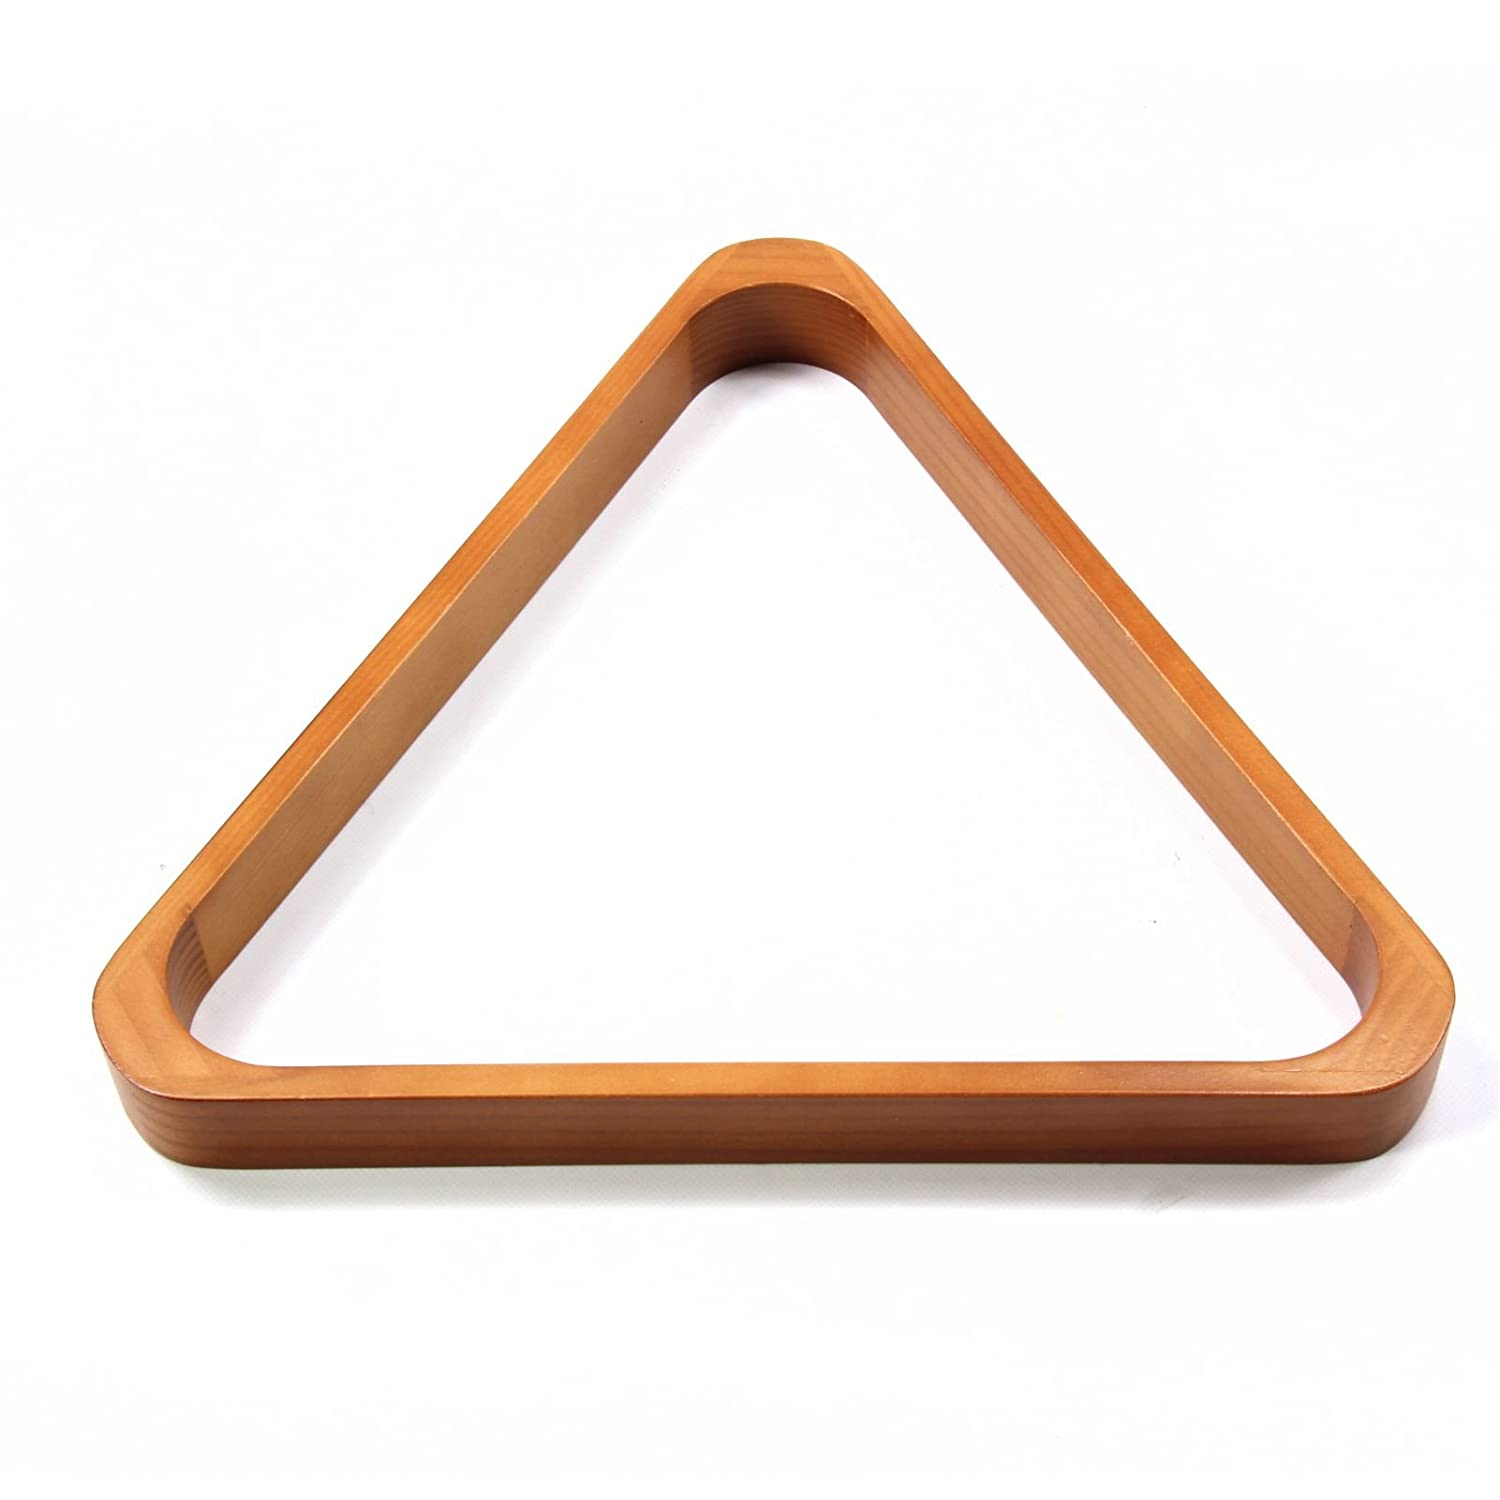 SECONDS - 2 Inch (51mm) 15 Ball OAK COLOURED Wooden Pool Triangle Funky Chalk